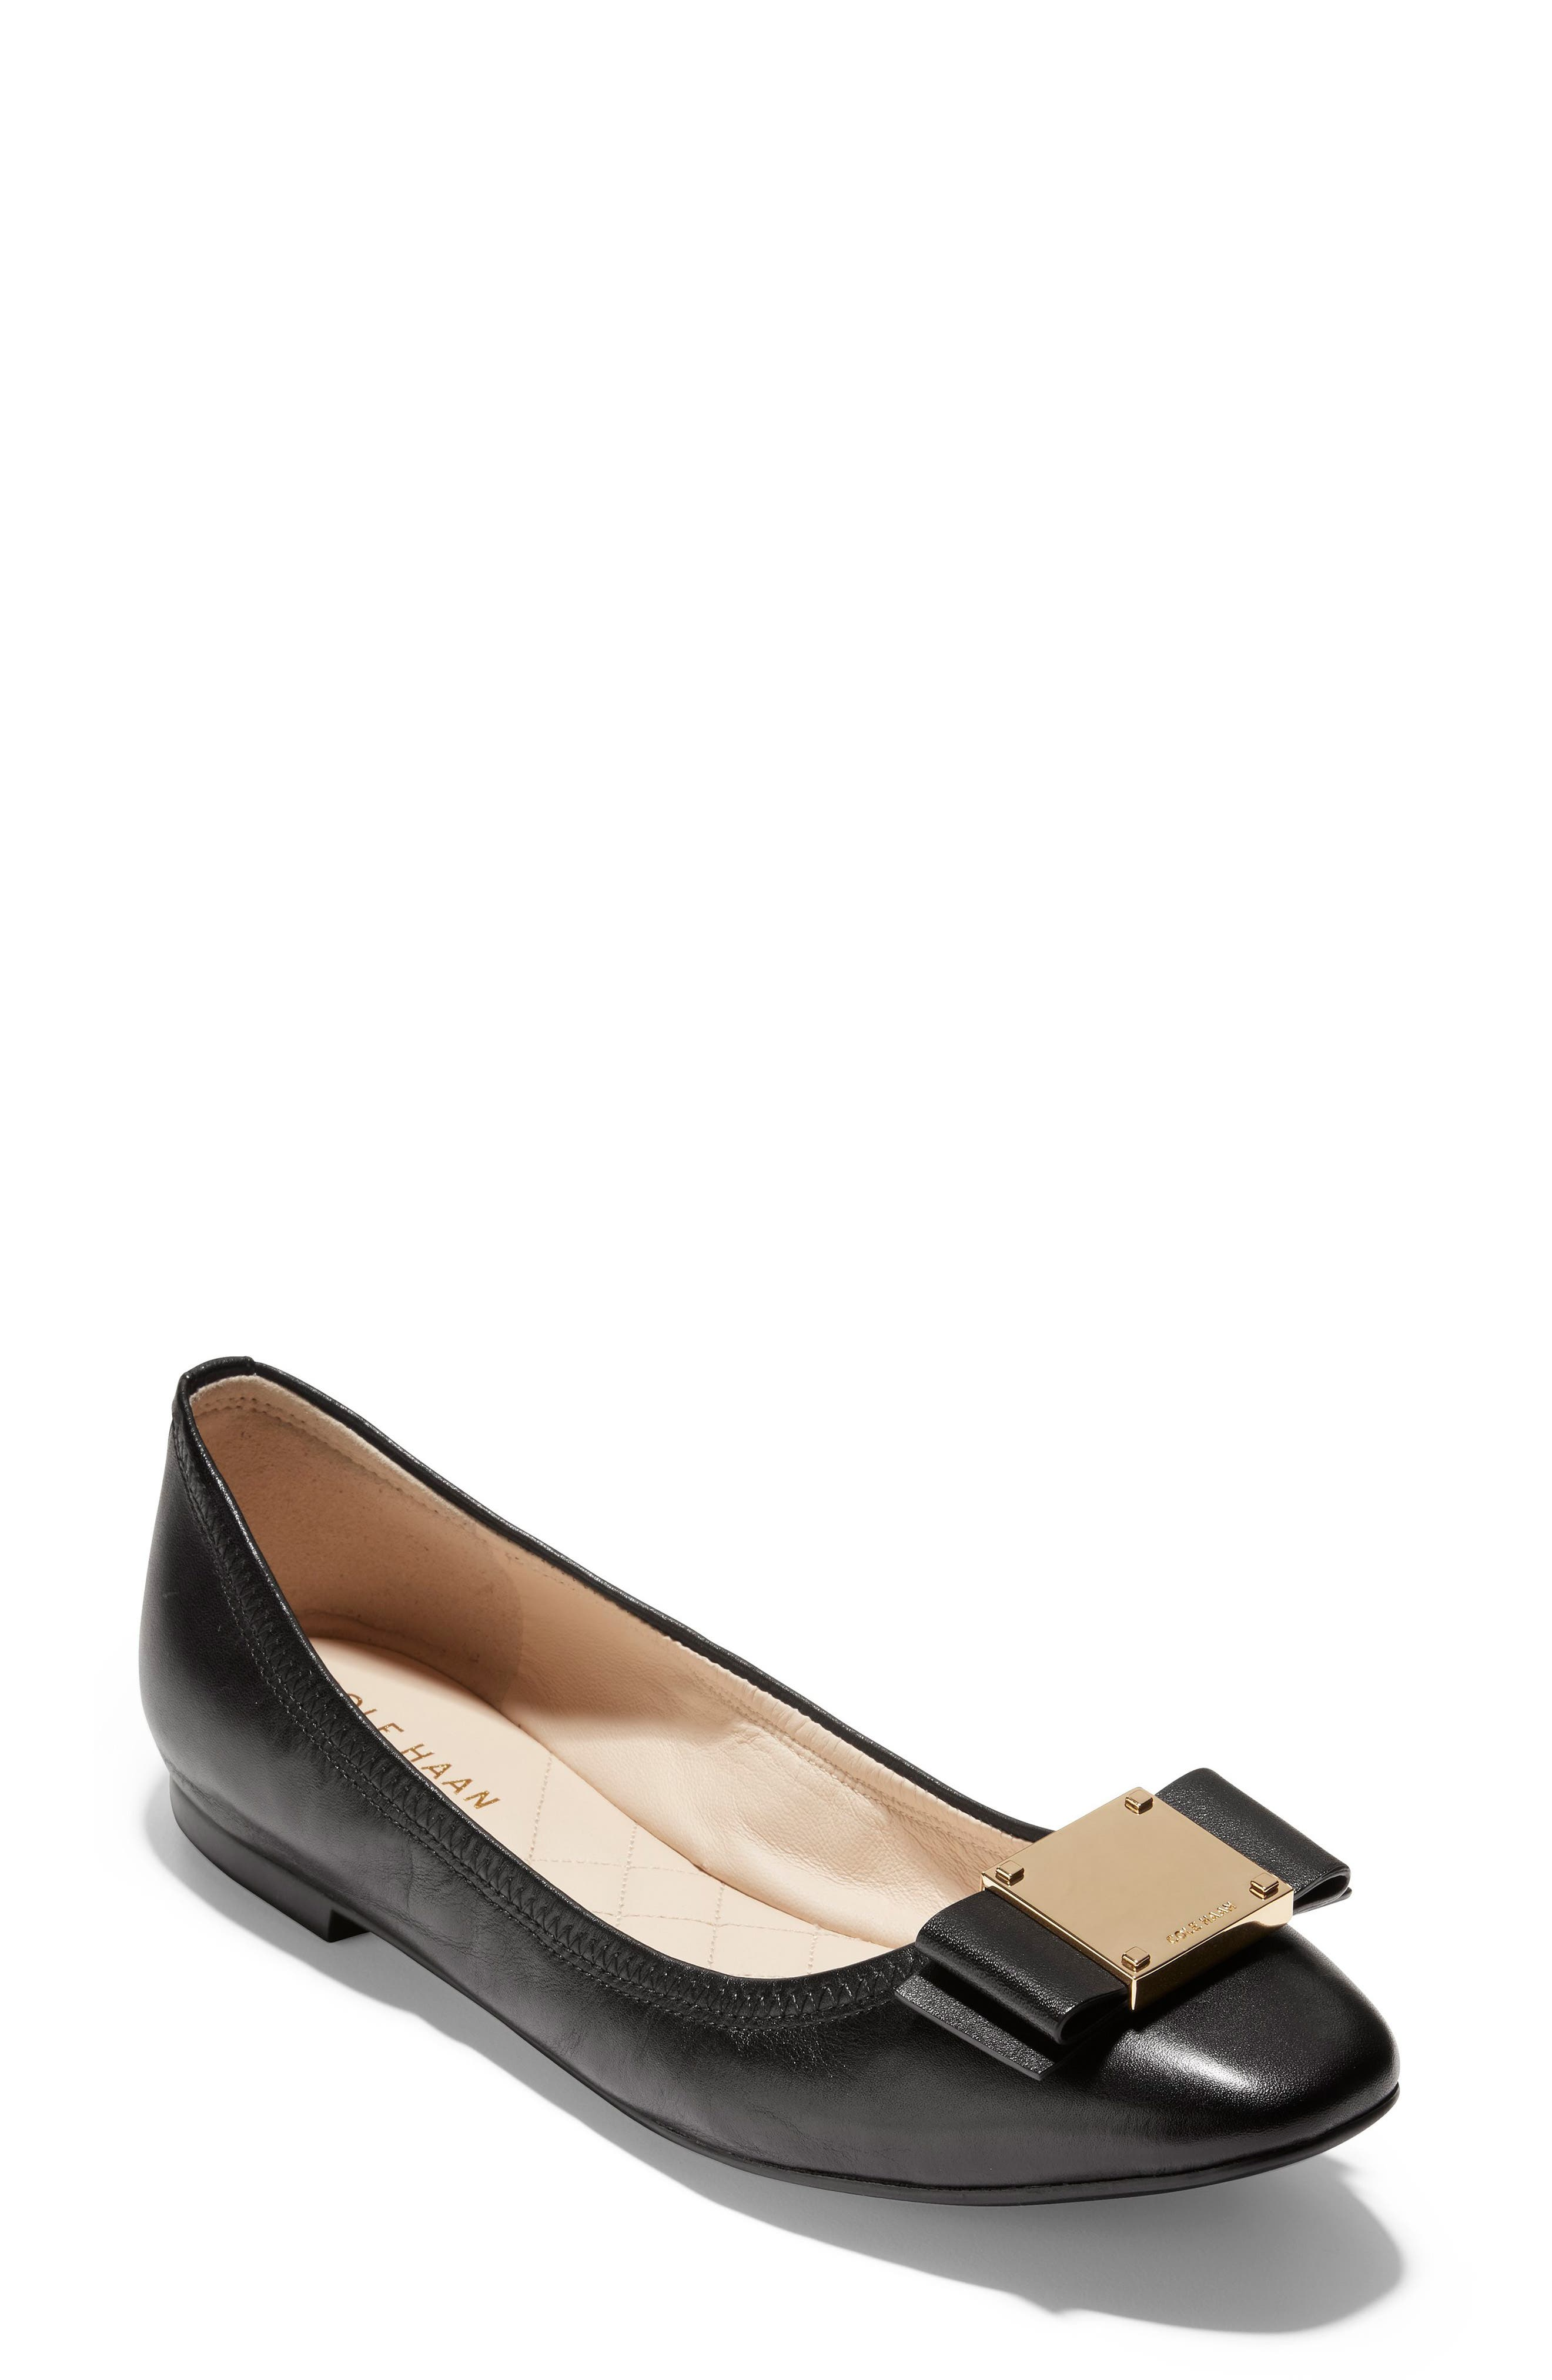 Tali Modern Bow Ballet Flat,                         Main,                         color, BLACK LEATHER